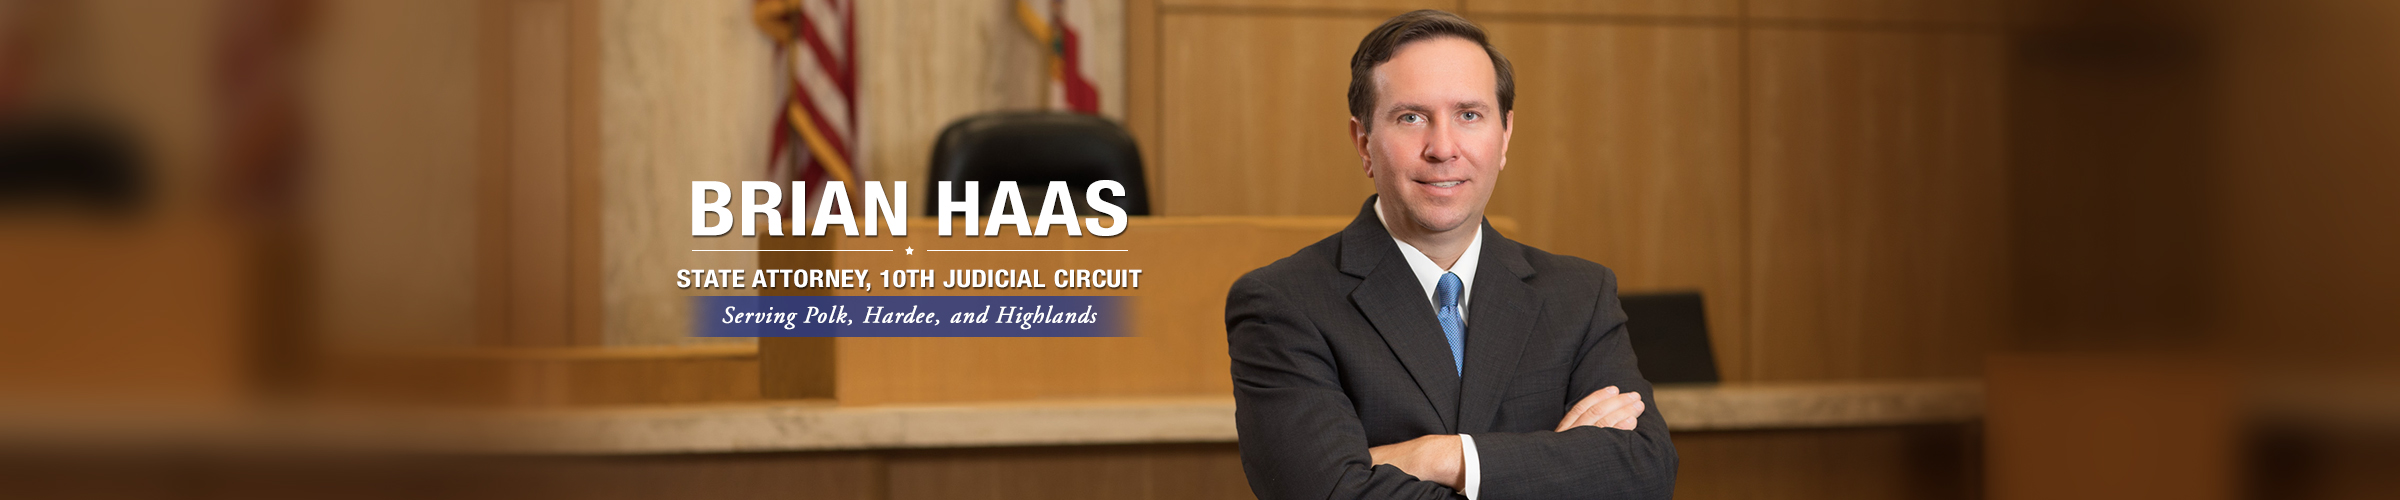 Brian Haas State Attorney 10th Judicial Circuit Slider Image